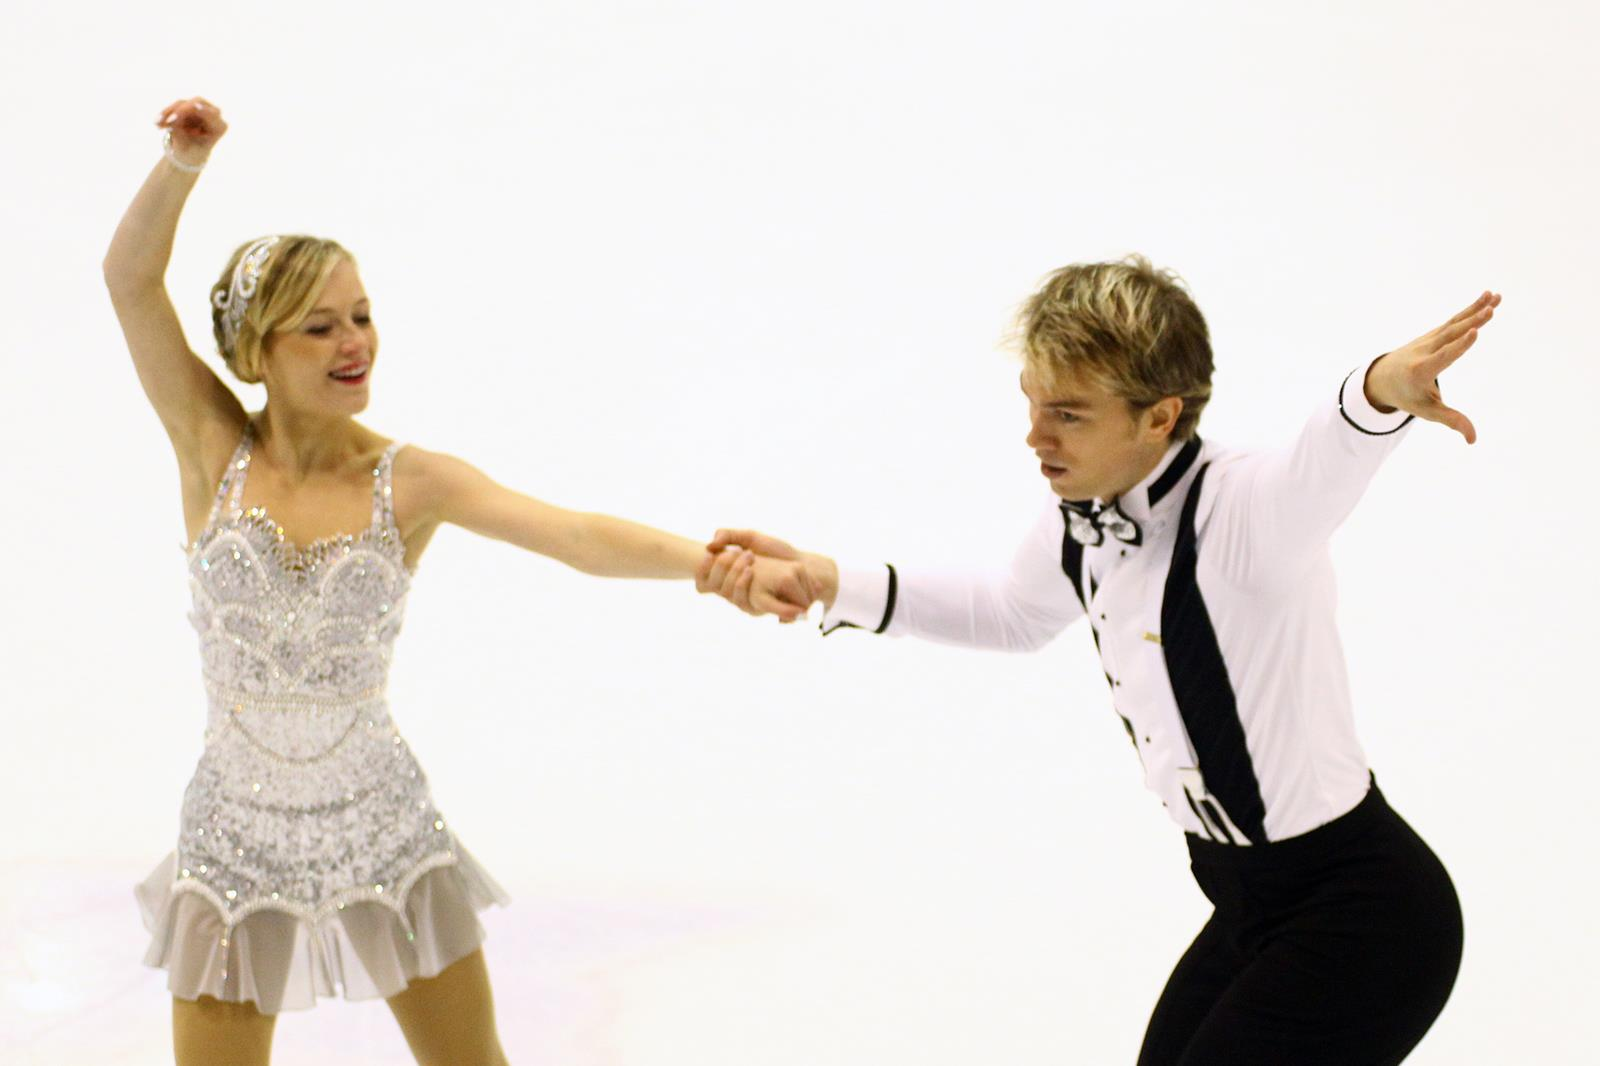 Nick Buckland and Penny Coomes ice skating blog: Bouncing back from a heart procedure